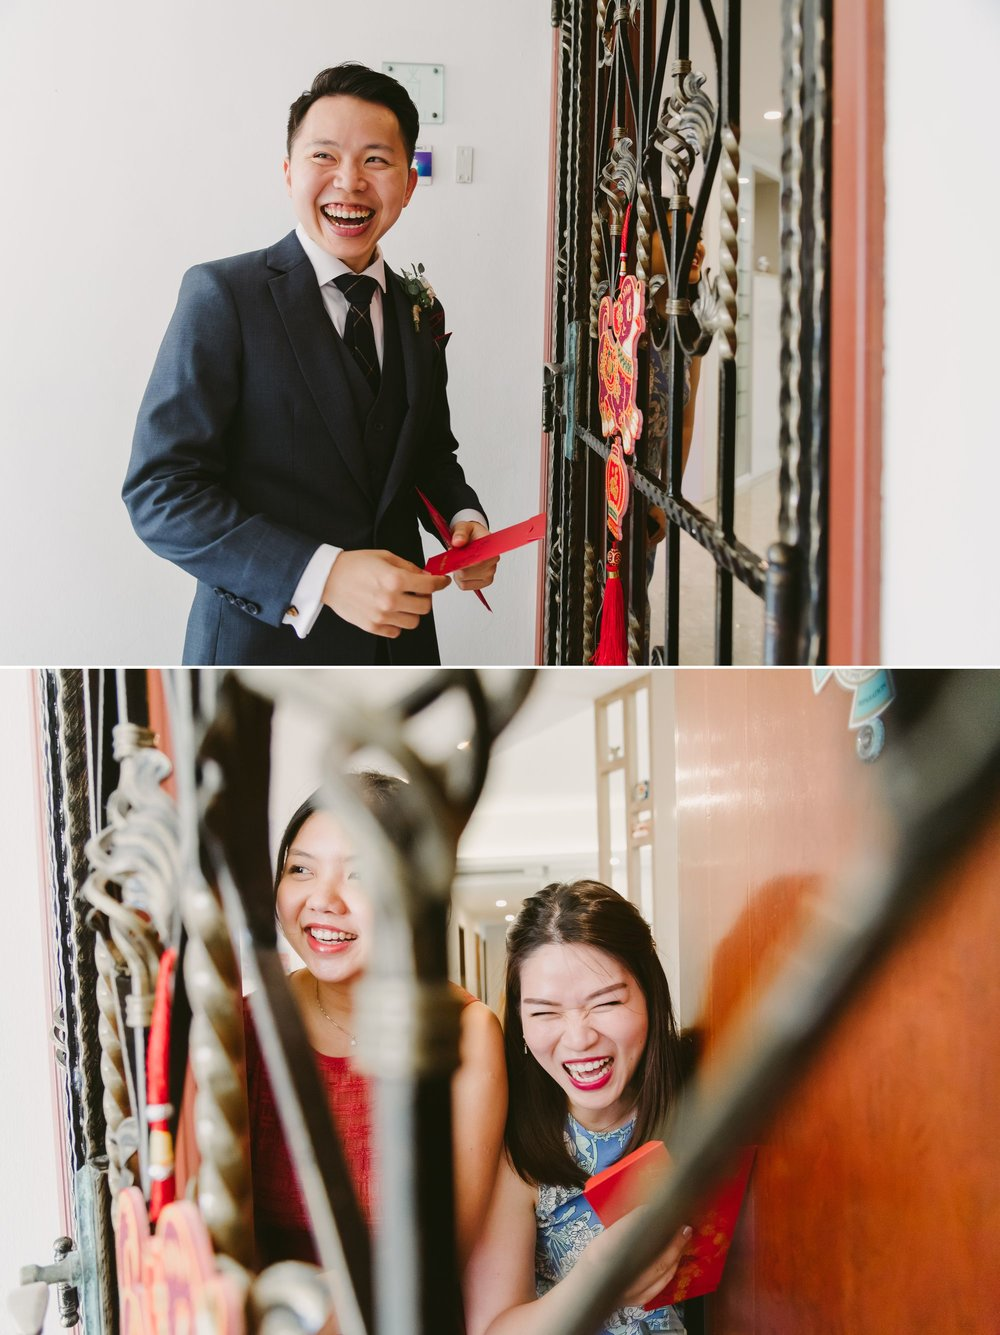 singapore_wedding_photographer_ 5.jpg